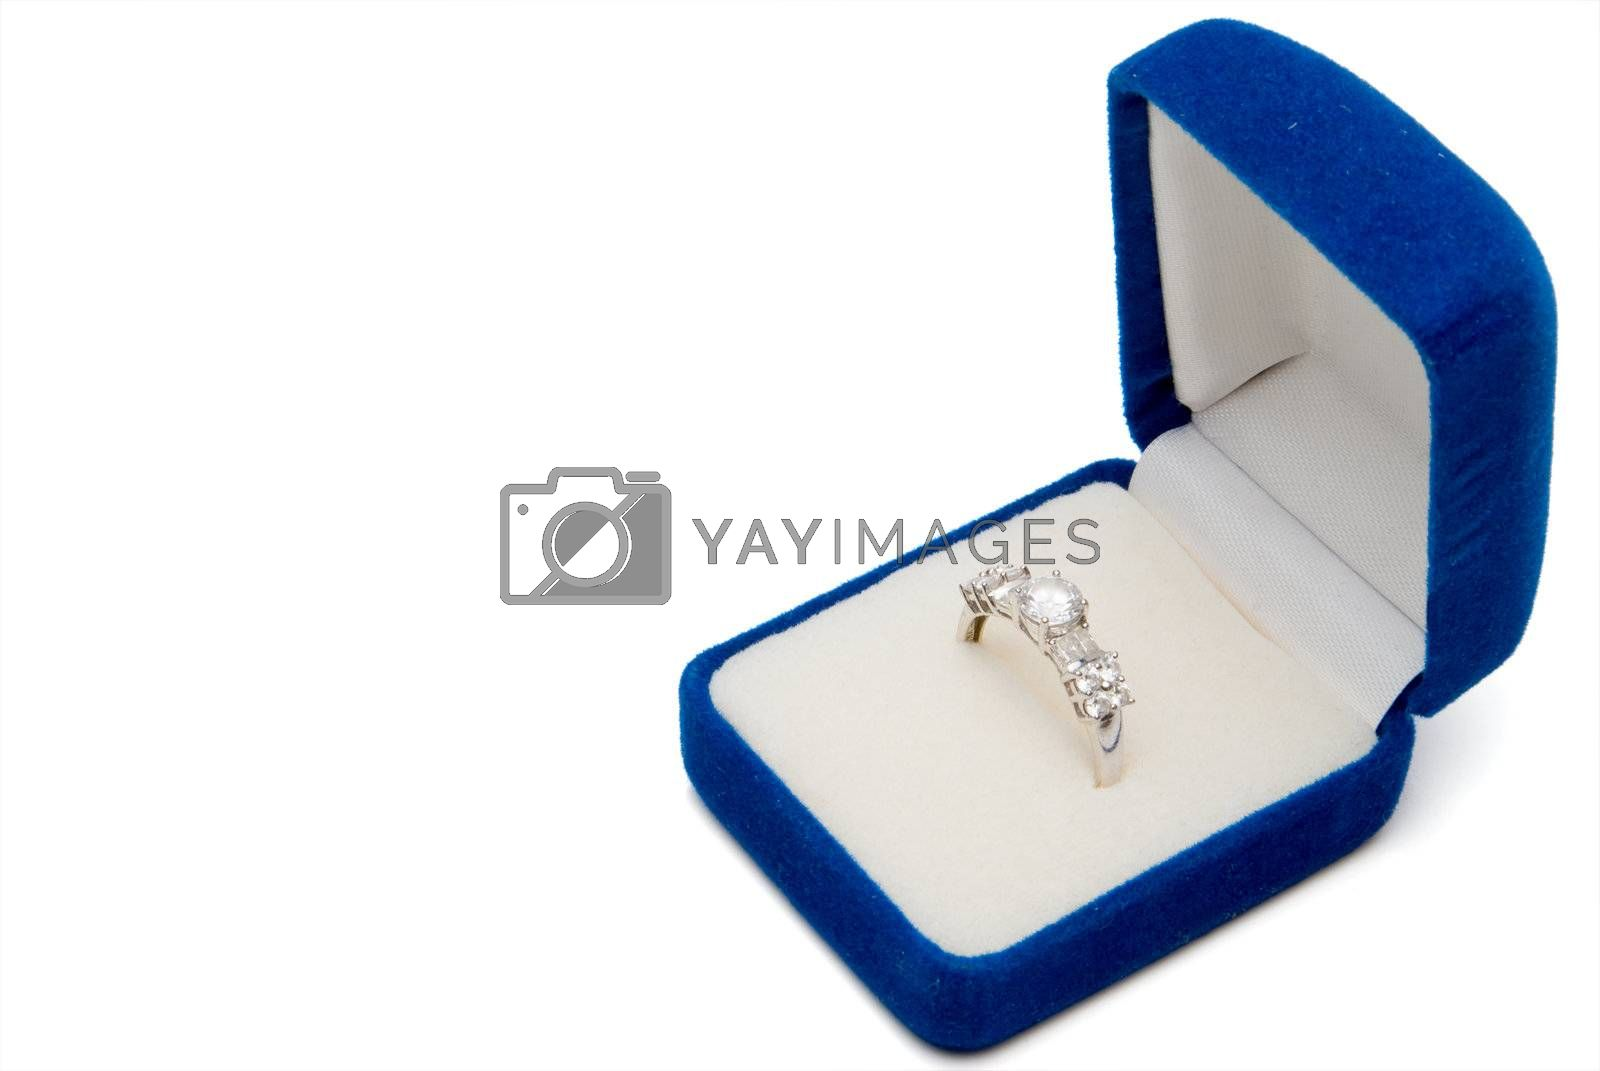 A wedding ring in a jewelers box.